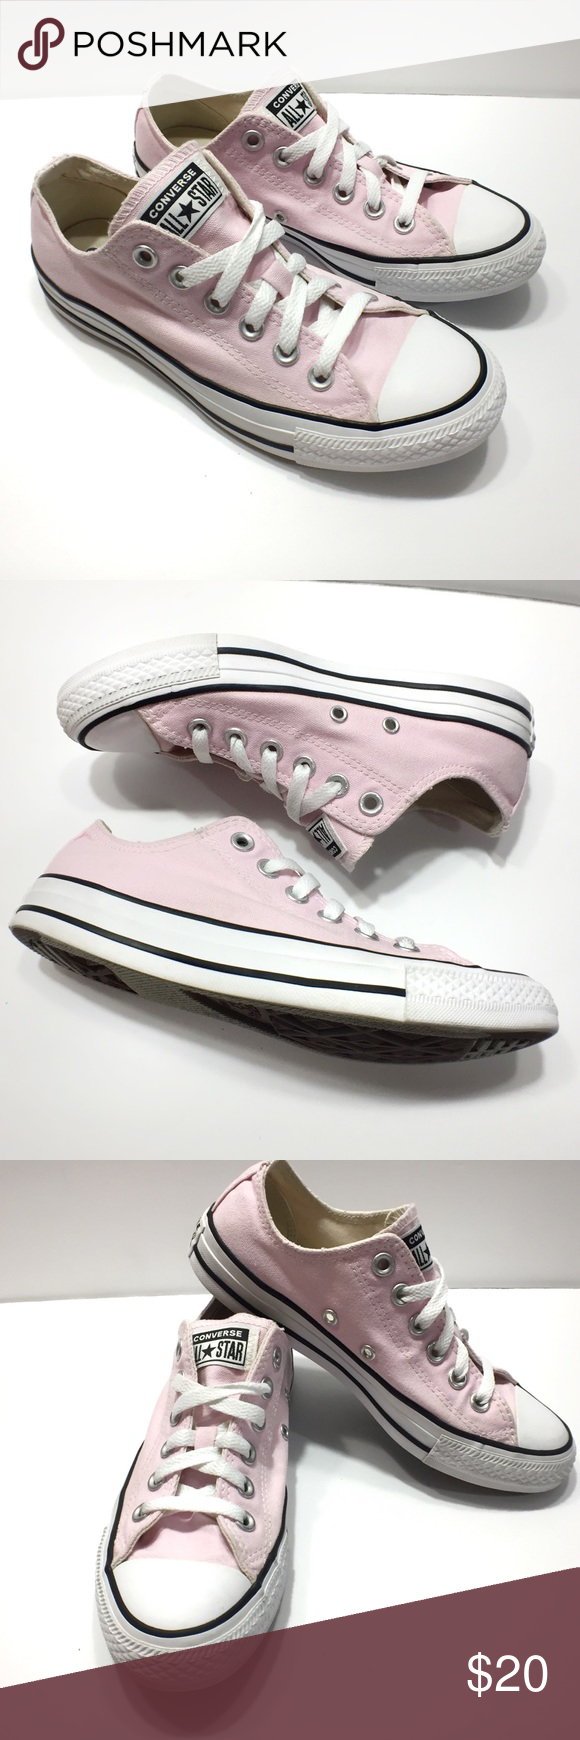 Converse Light Pink All Star Low Top Sneakers Gently Used